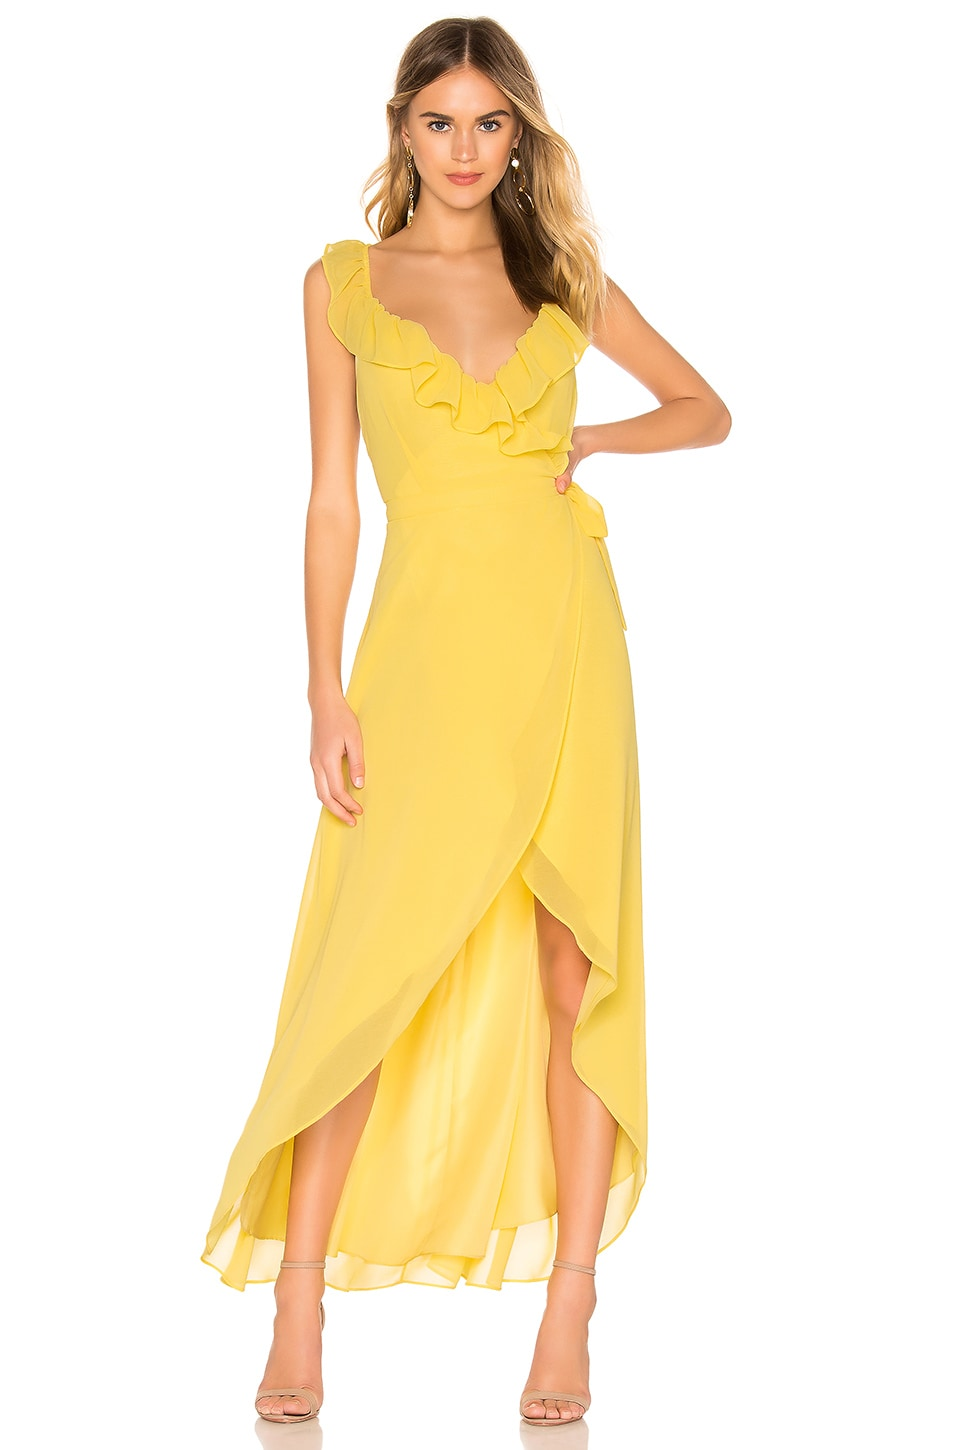 BB Dakota RSVP by BB Dakota Formation Maxi Dress in Citrus